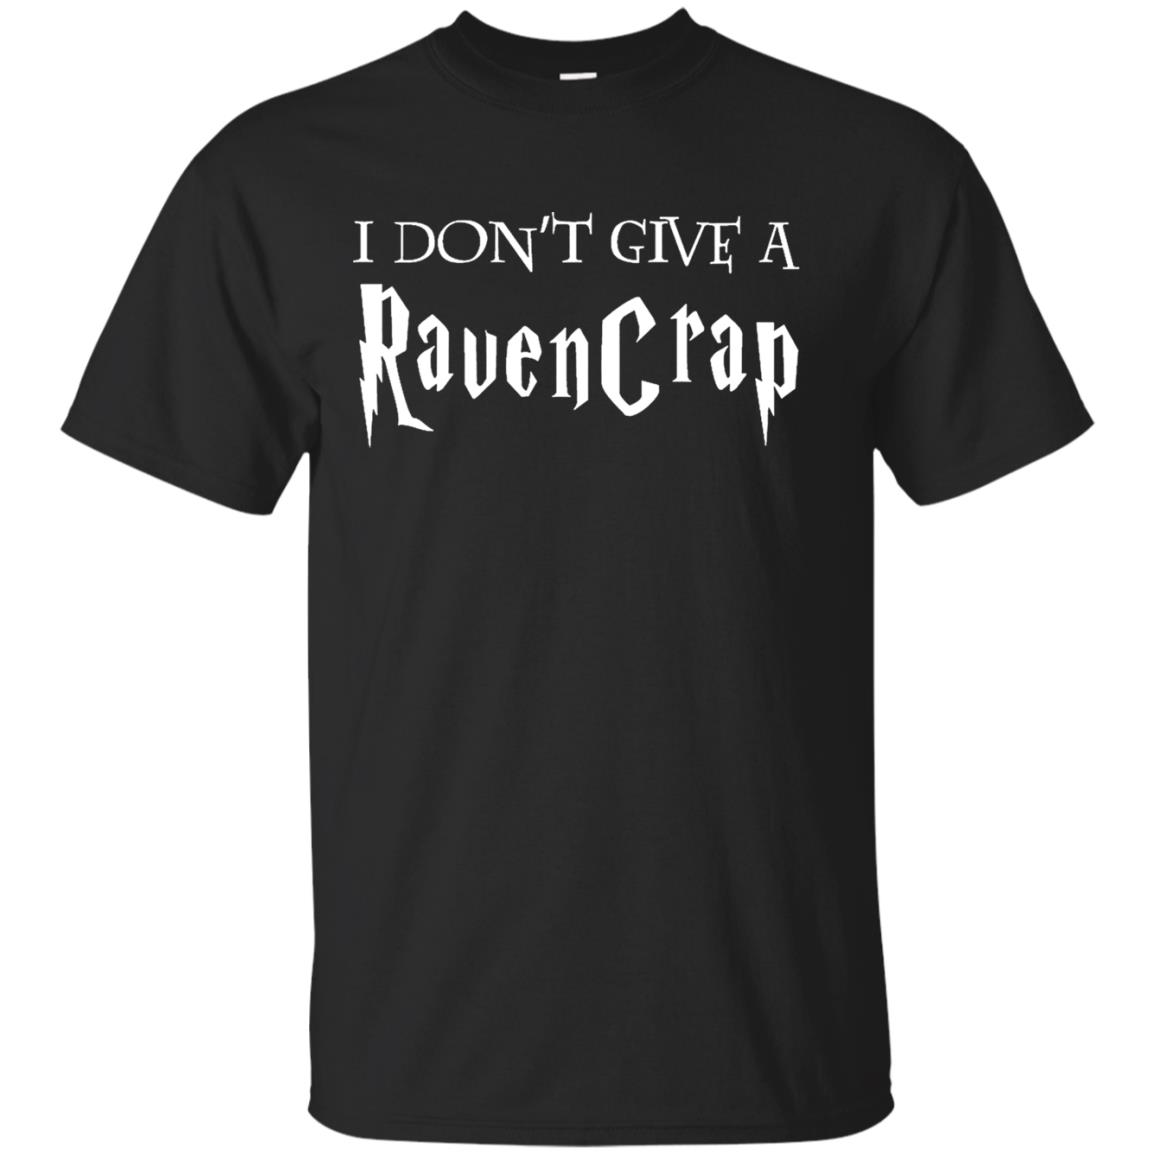 image 685 - Harry Potter: I don't give a Ravencrap shirt & sweater